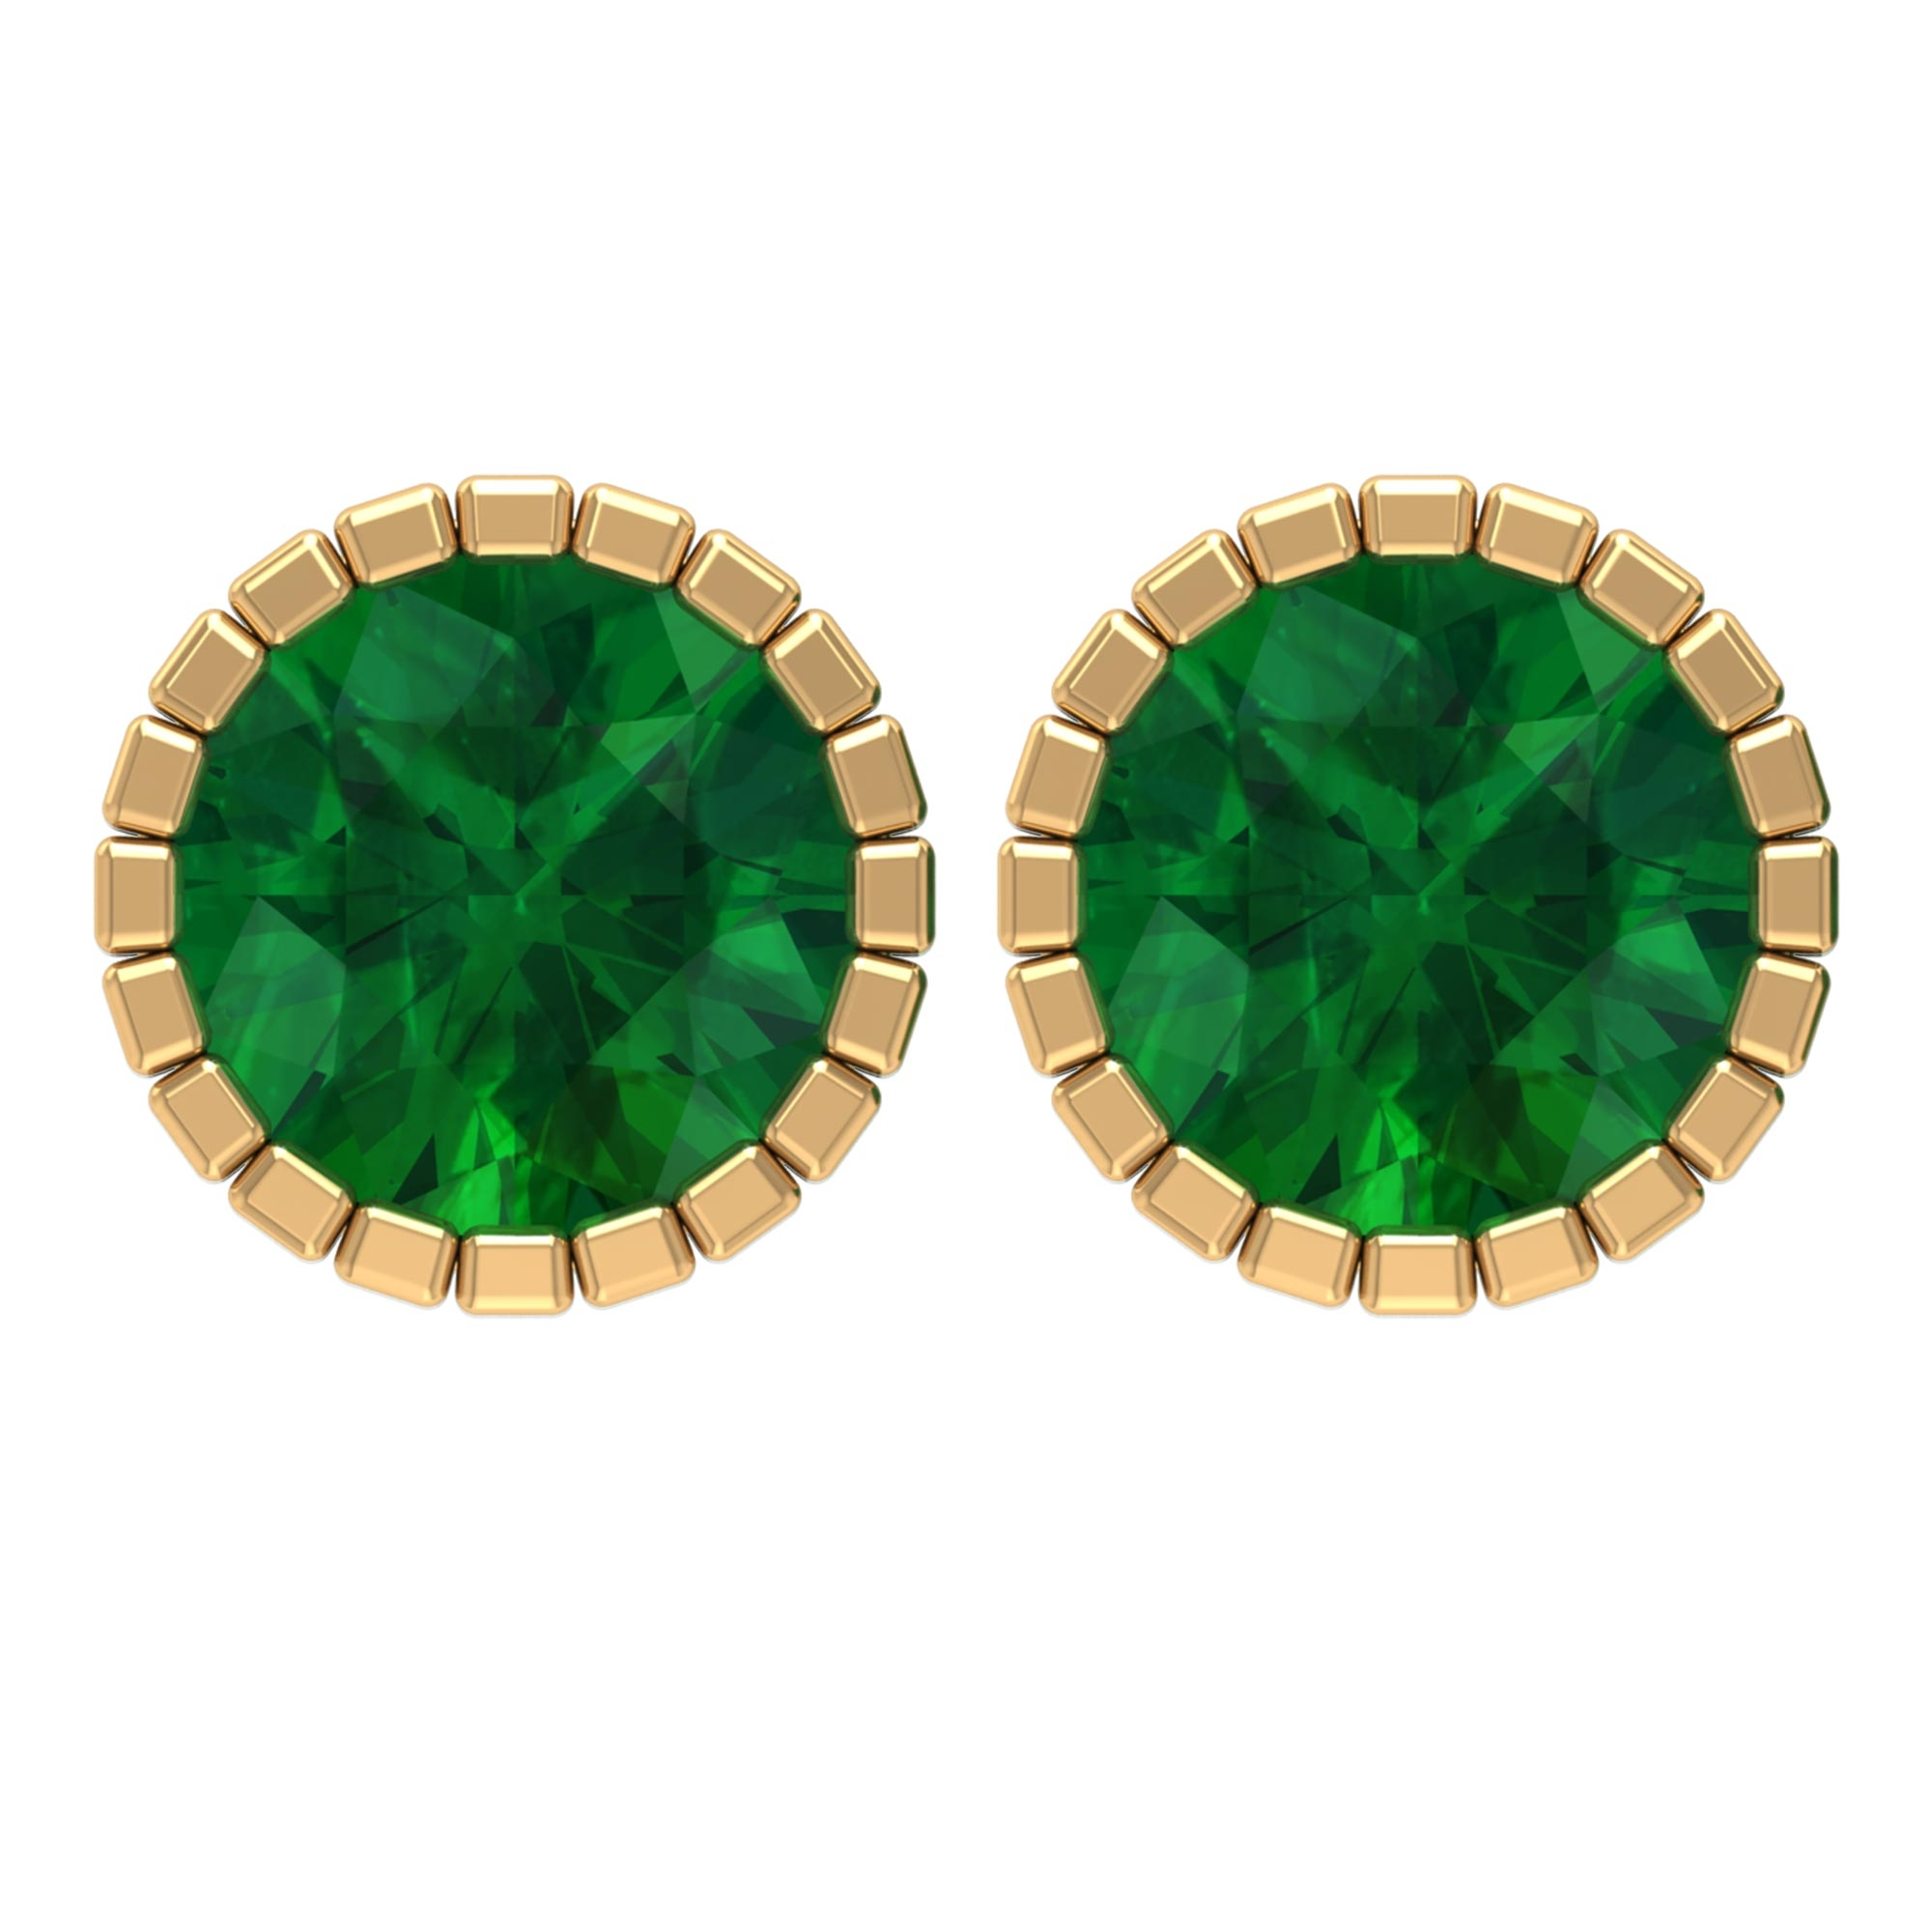 7 MM Round Cut Emerald Solitaire Stud Earrings in Bezel Setting with Milgrain Details